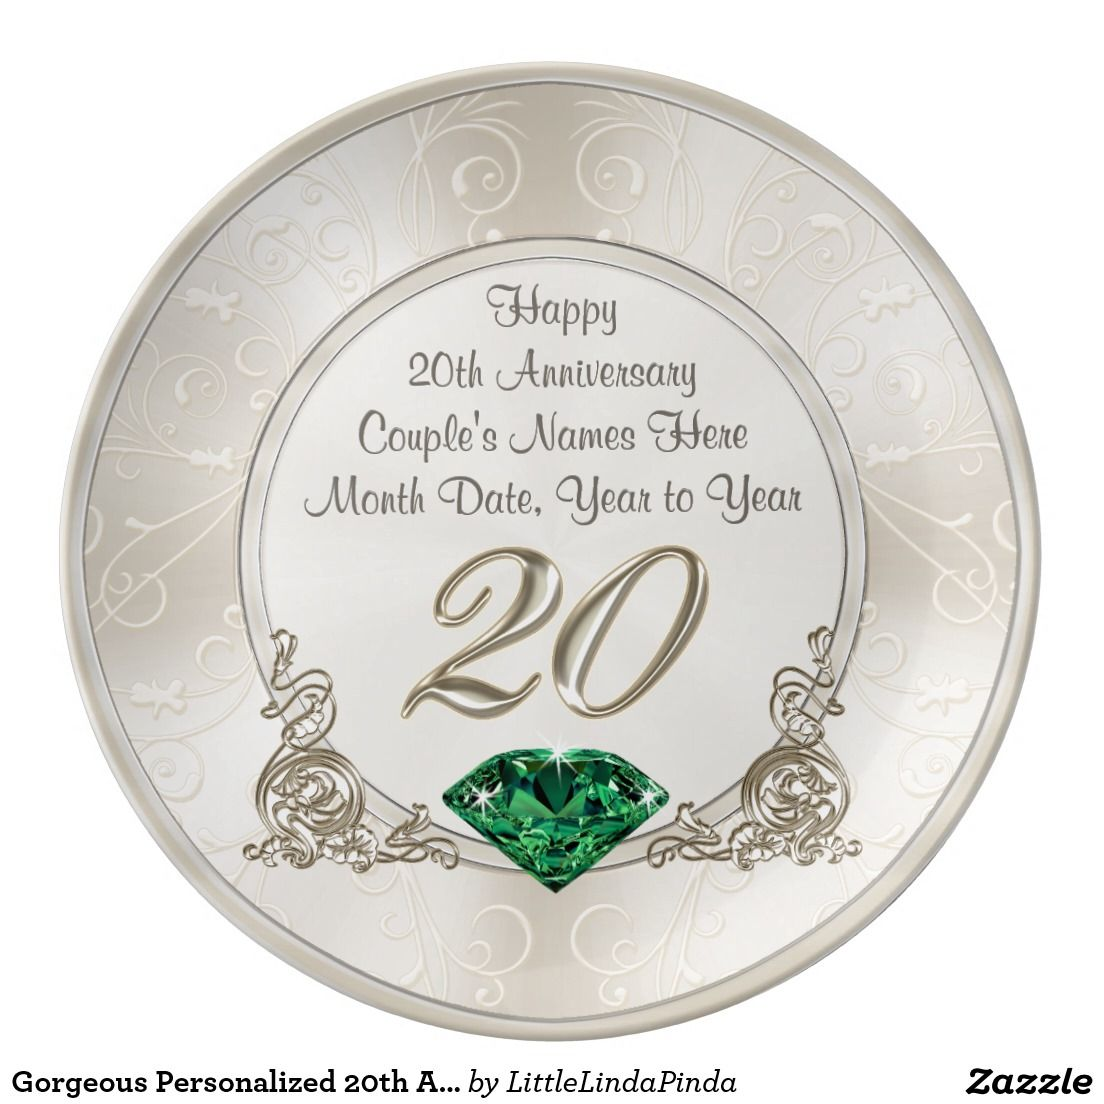 Gorgeous Personalized Th Anniversary Gifts Plate